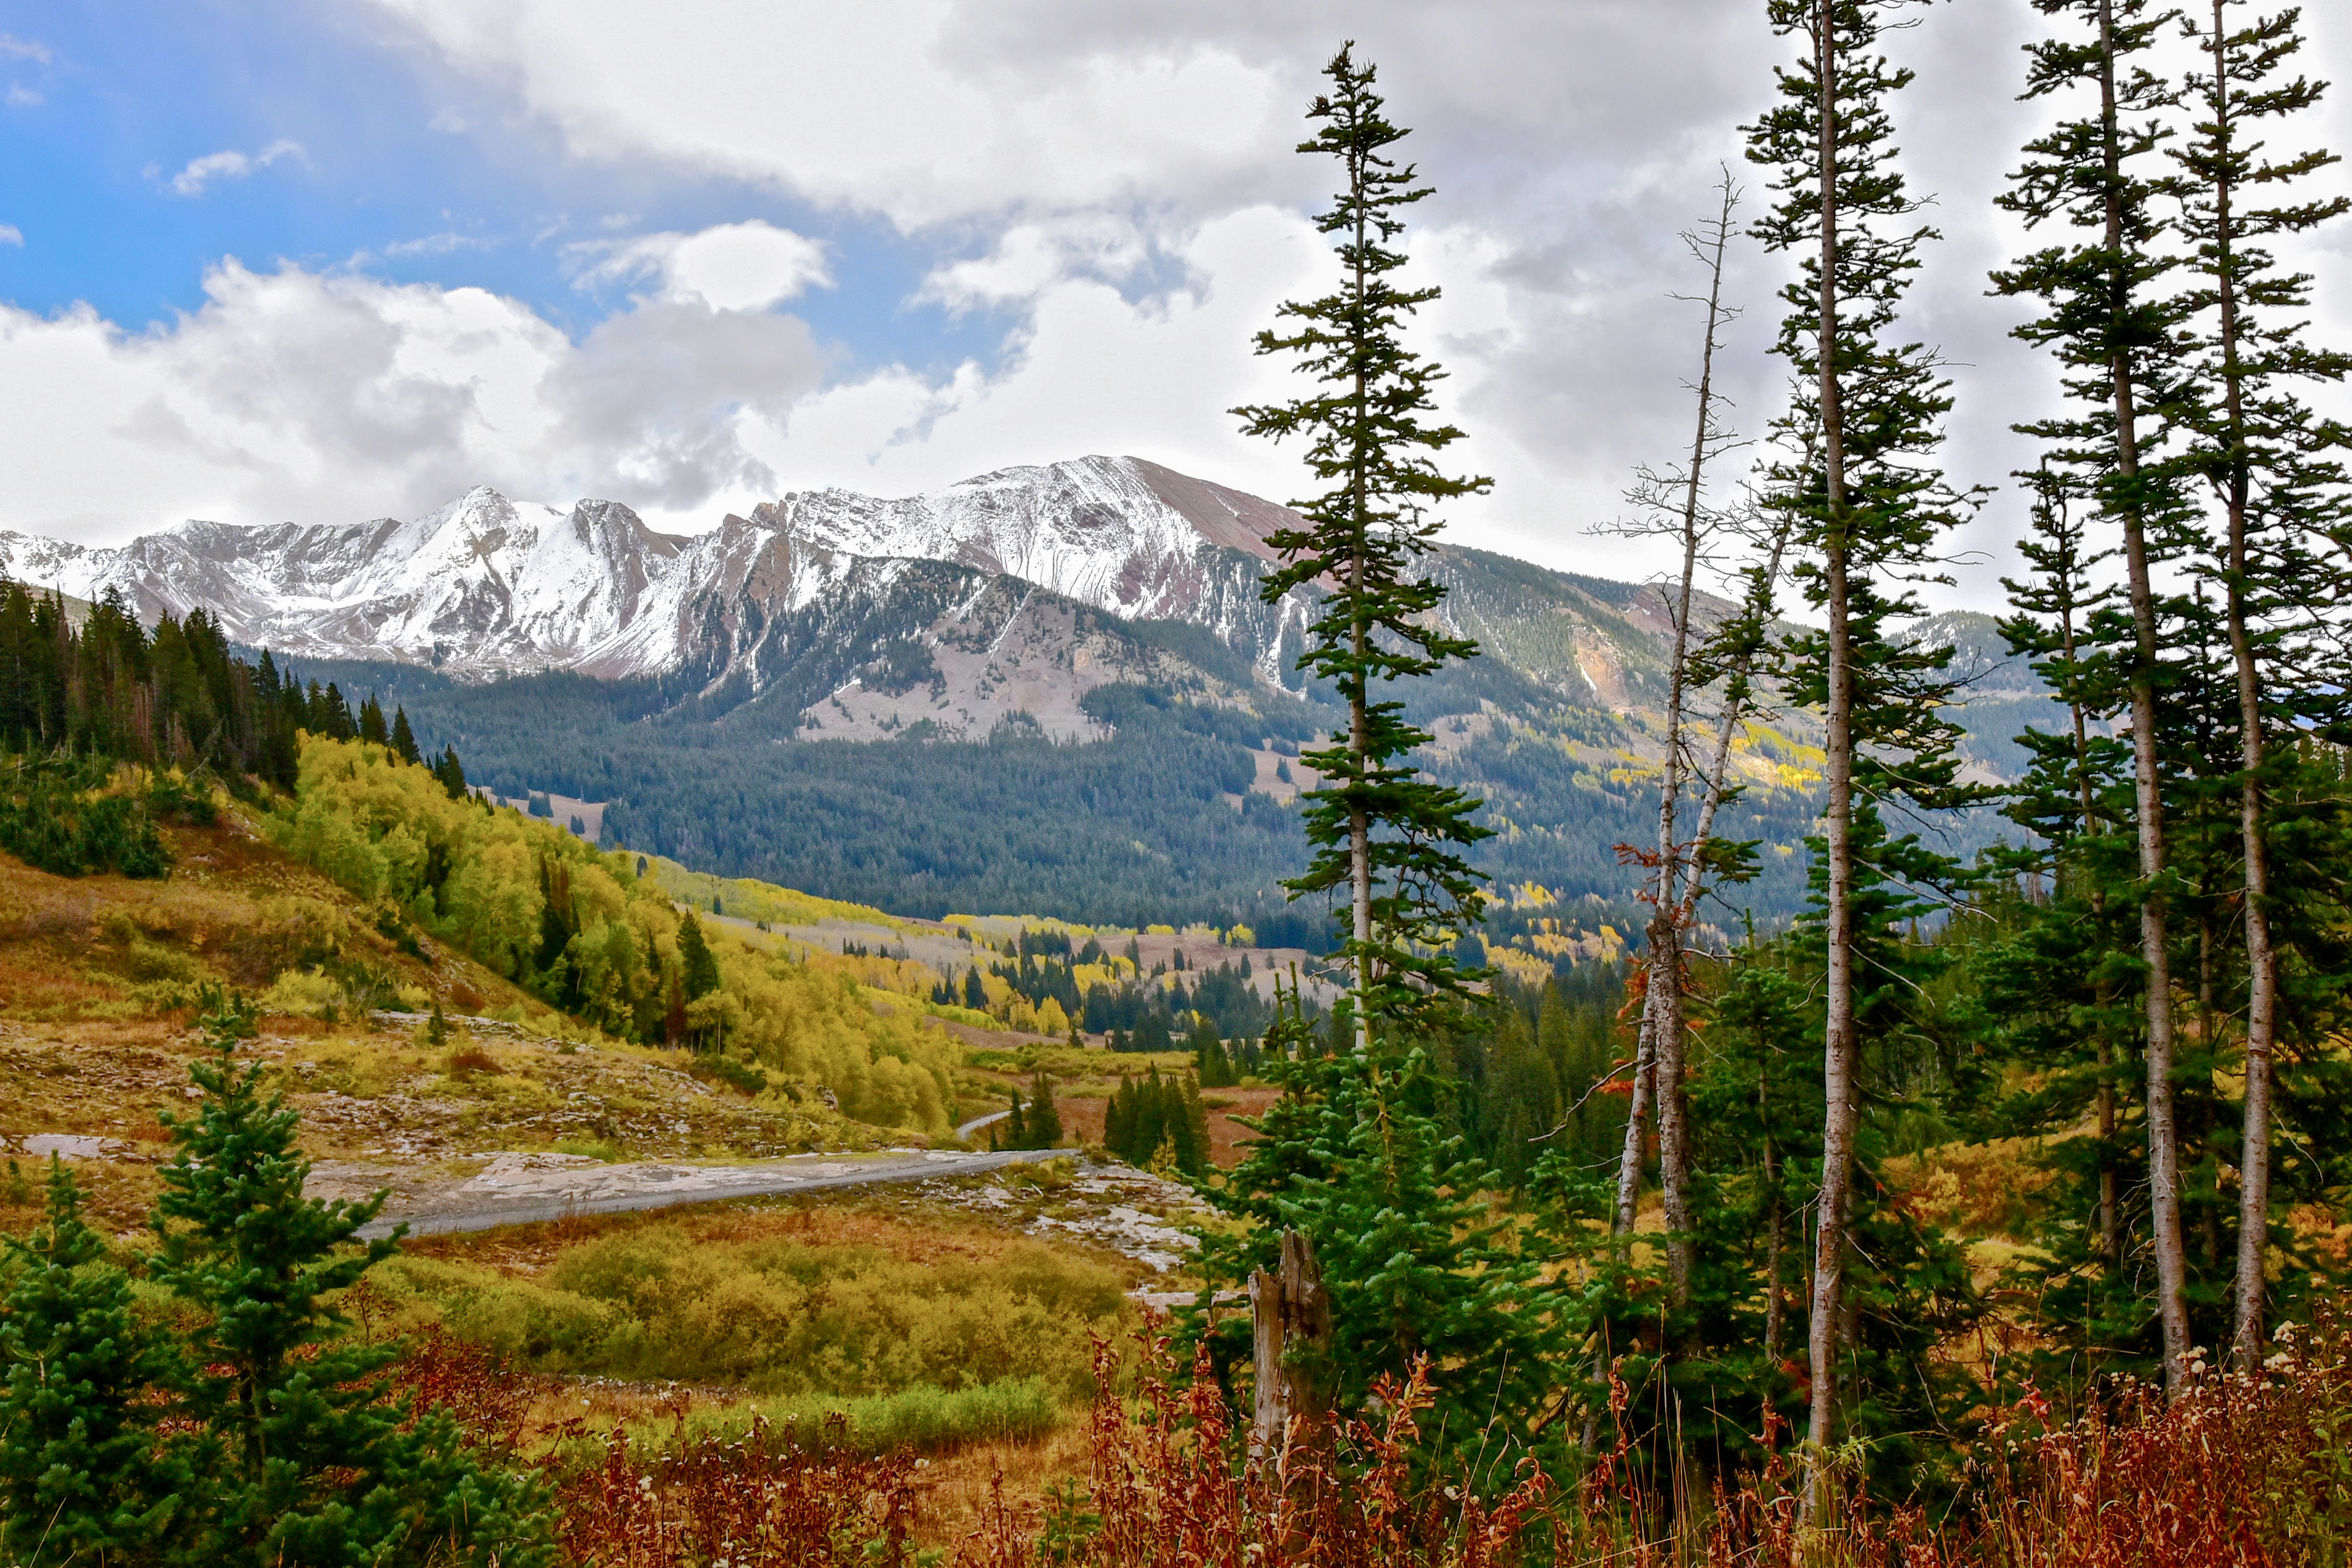 <p>The mountains aroundSchofield Pass and Paradise Divide, near Crested Butte, Colo., show a dusting of snow, Sept. 29, 2017.</p>